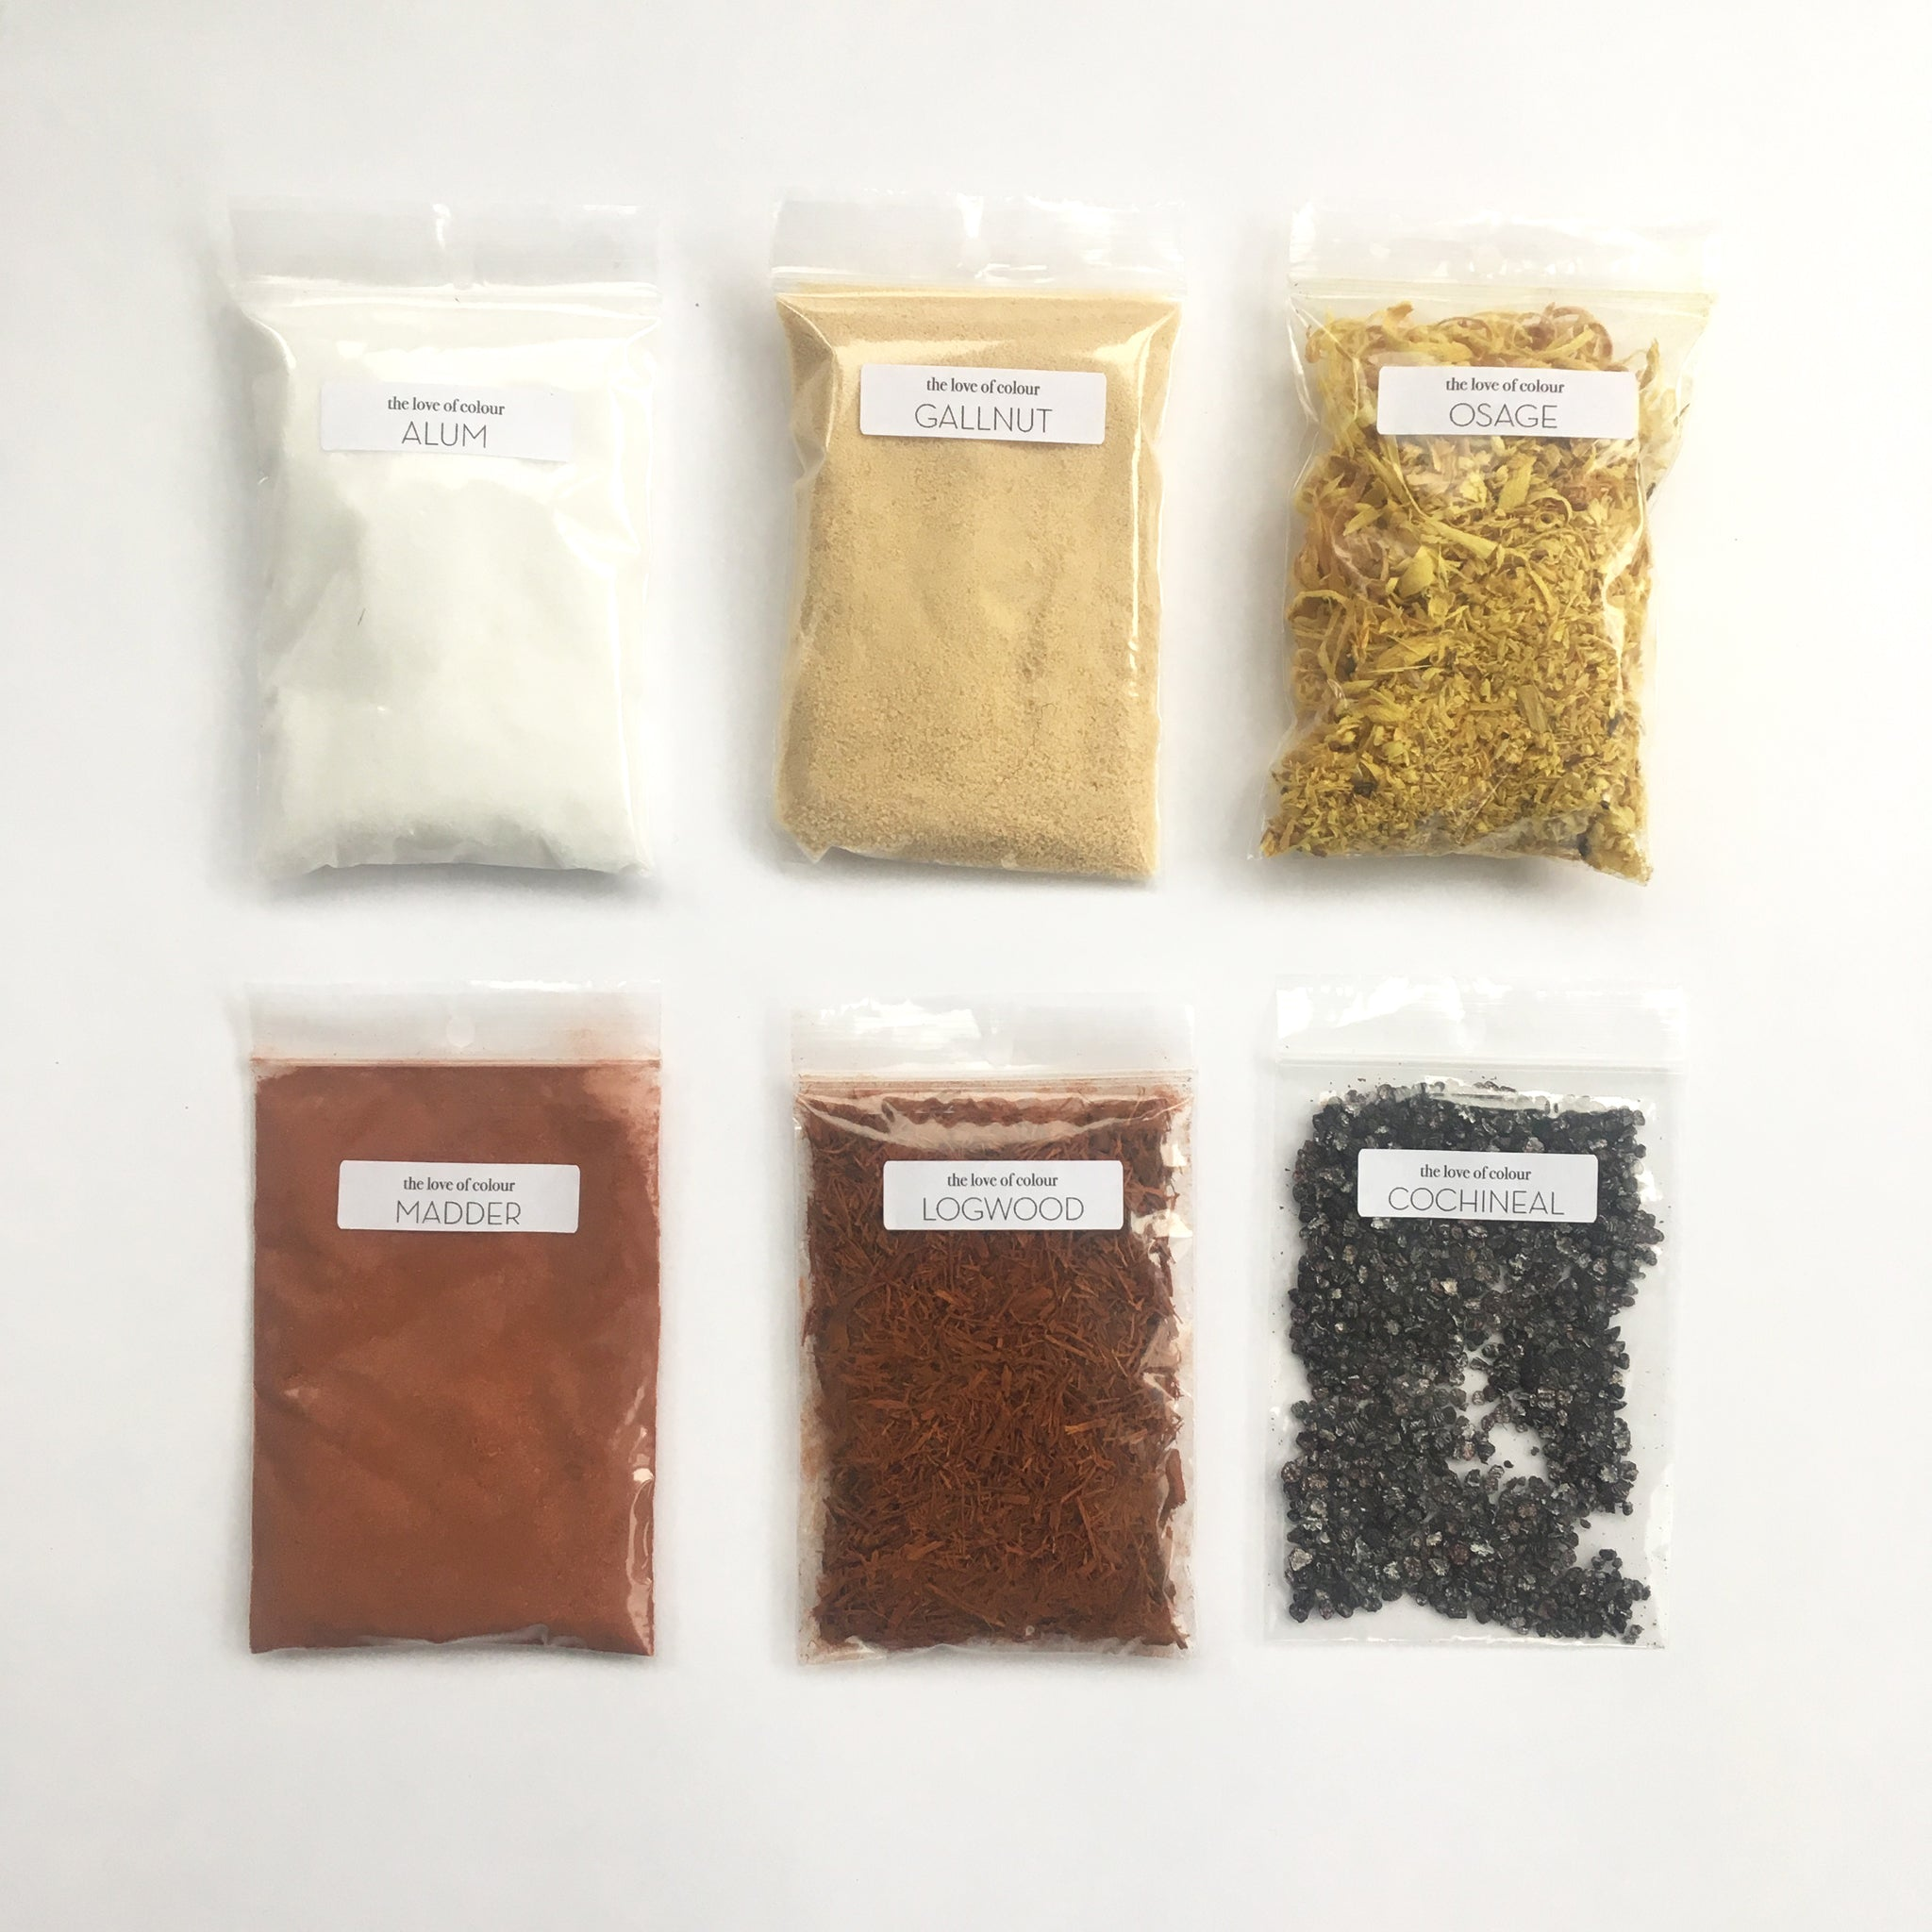 Contents of natural dye kit